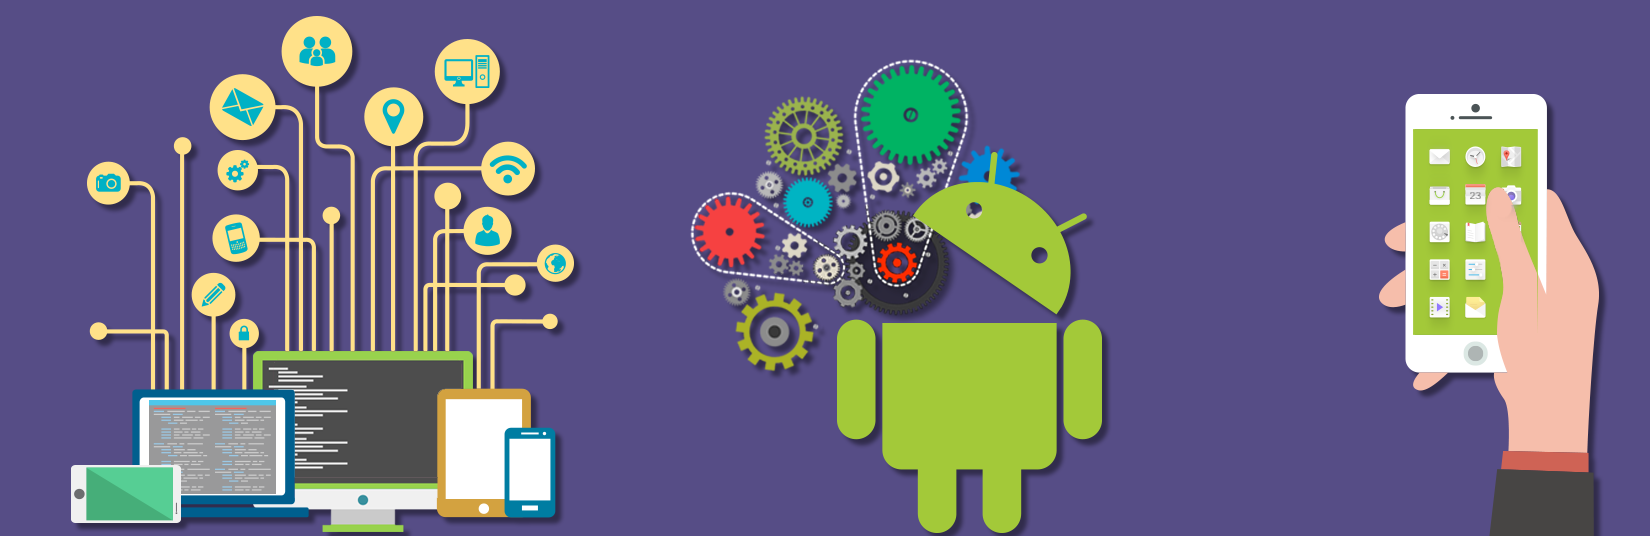 Android-Mobile-Application-Development